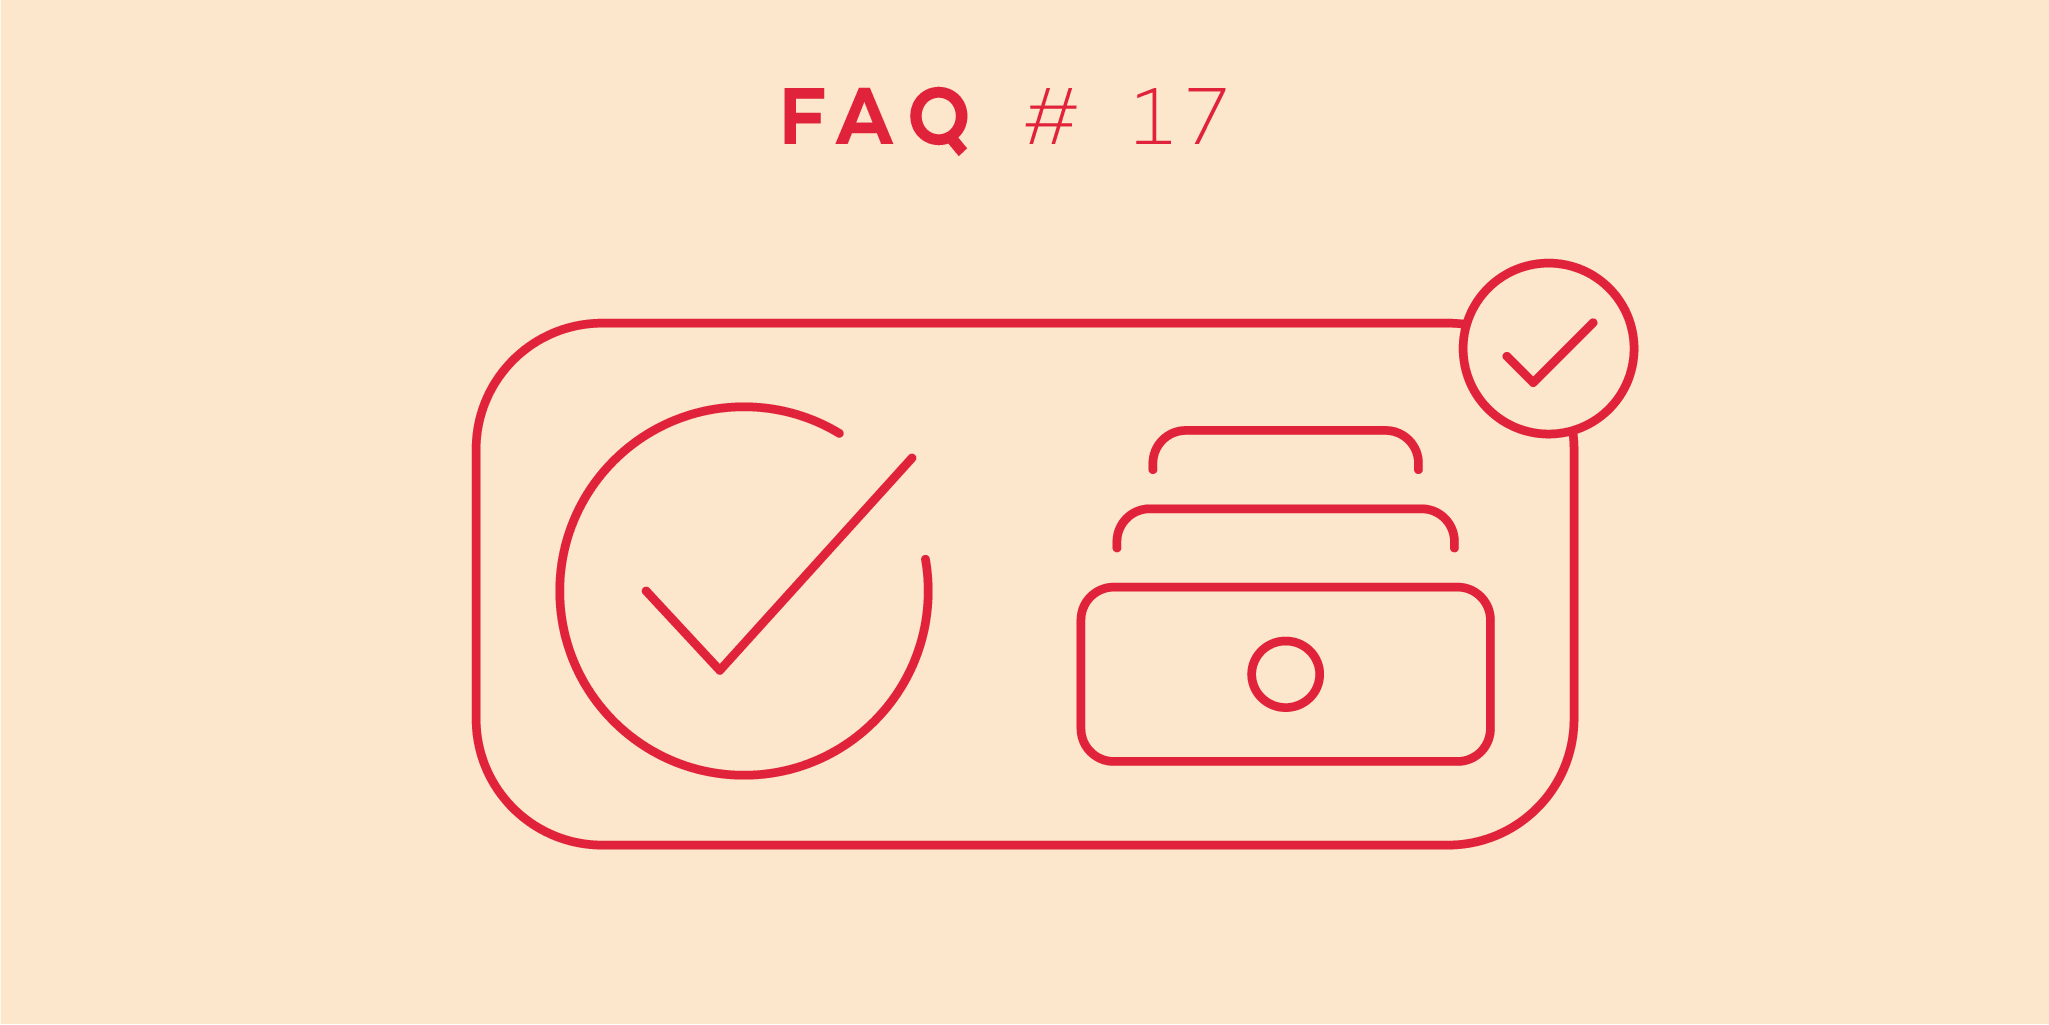 Archiving Tasks and Projects in Nozbe - Part 17 of our FAQ series